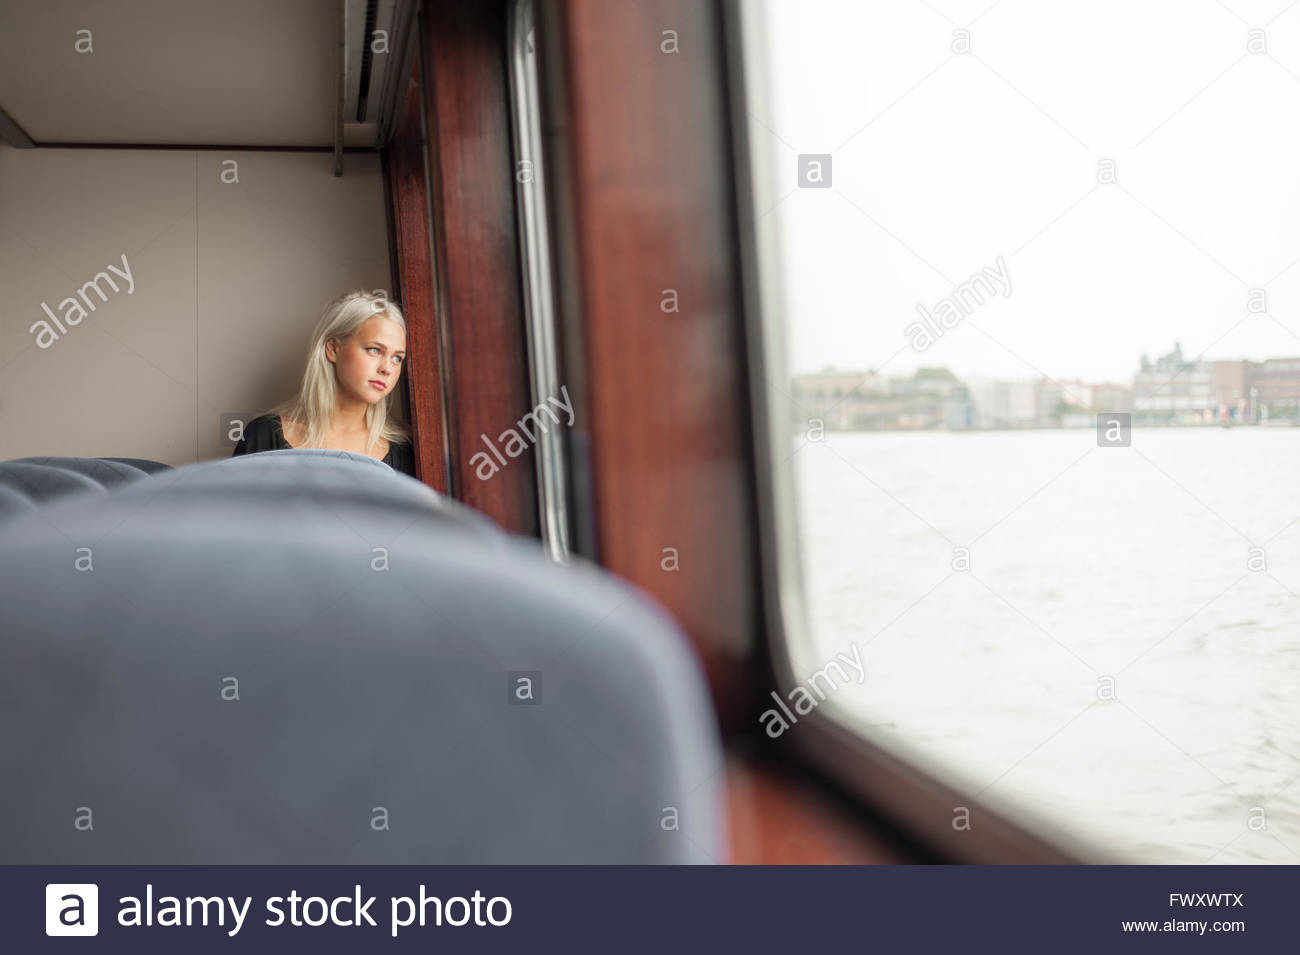 Sweden, Vastra Gotaland, Gothenburg, Young woman looking through window in train - Stock Image